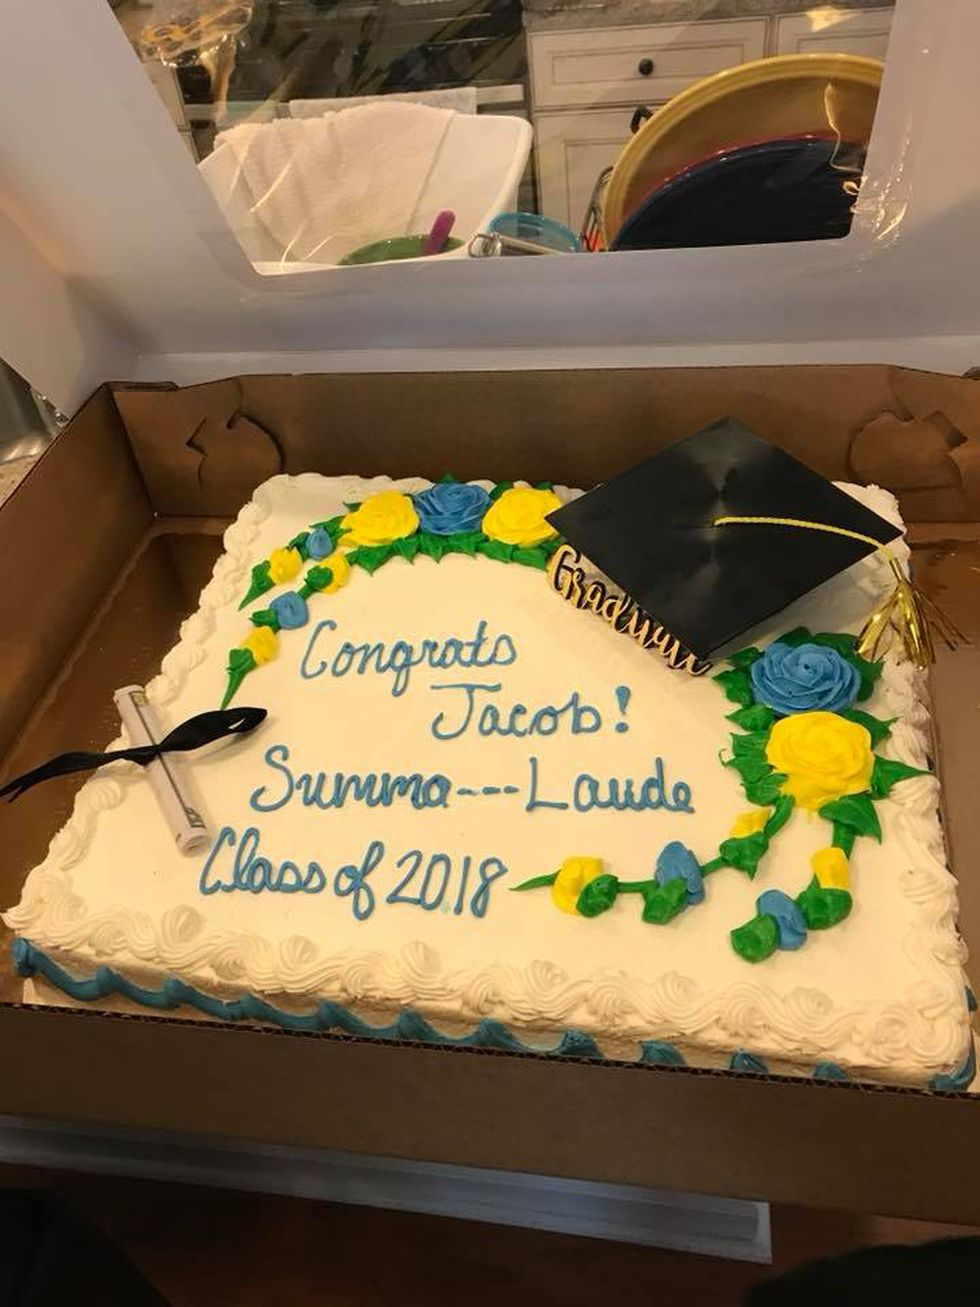 Another angle of the cake which Koscinski ordered from the West Ashley Publix (Source: Provided)